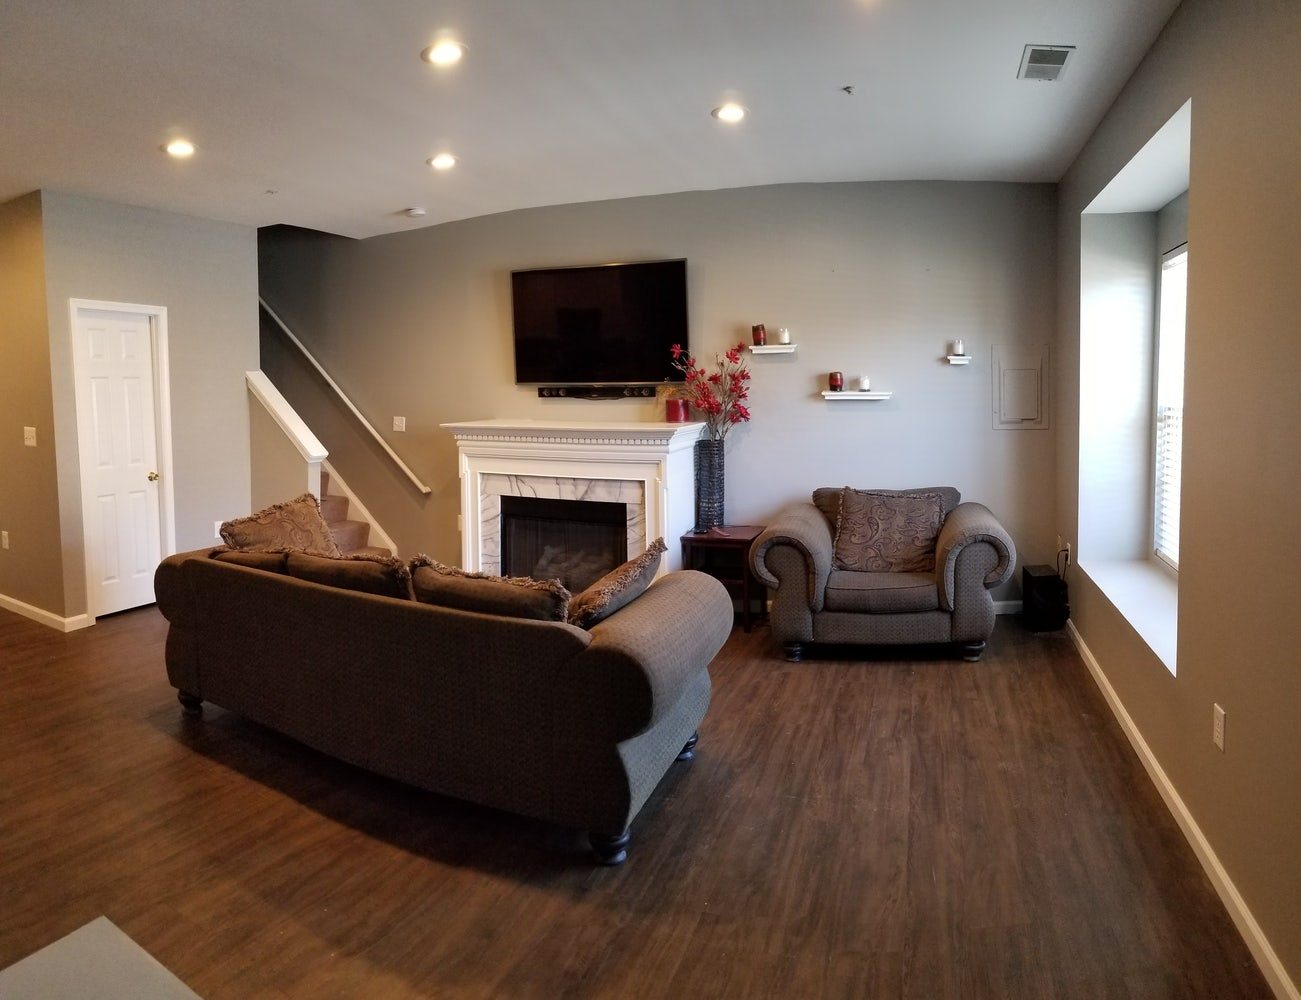 BEAUTIFUL 3 BR / 2 5 BA Townhouse for Rent - SECTION 8